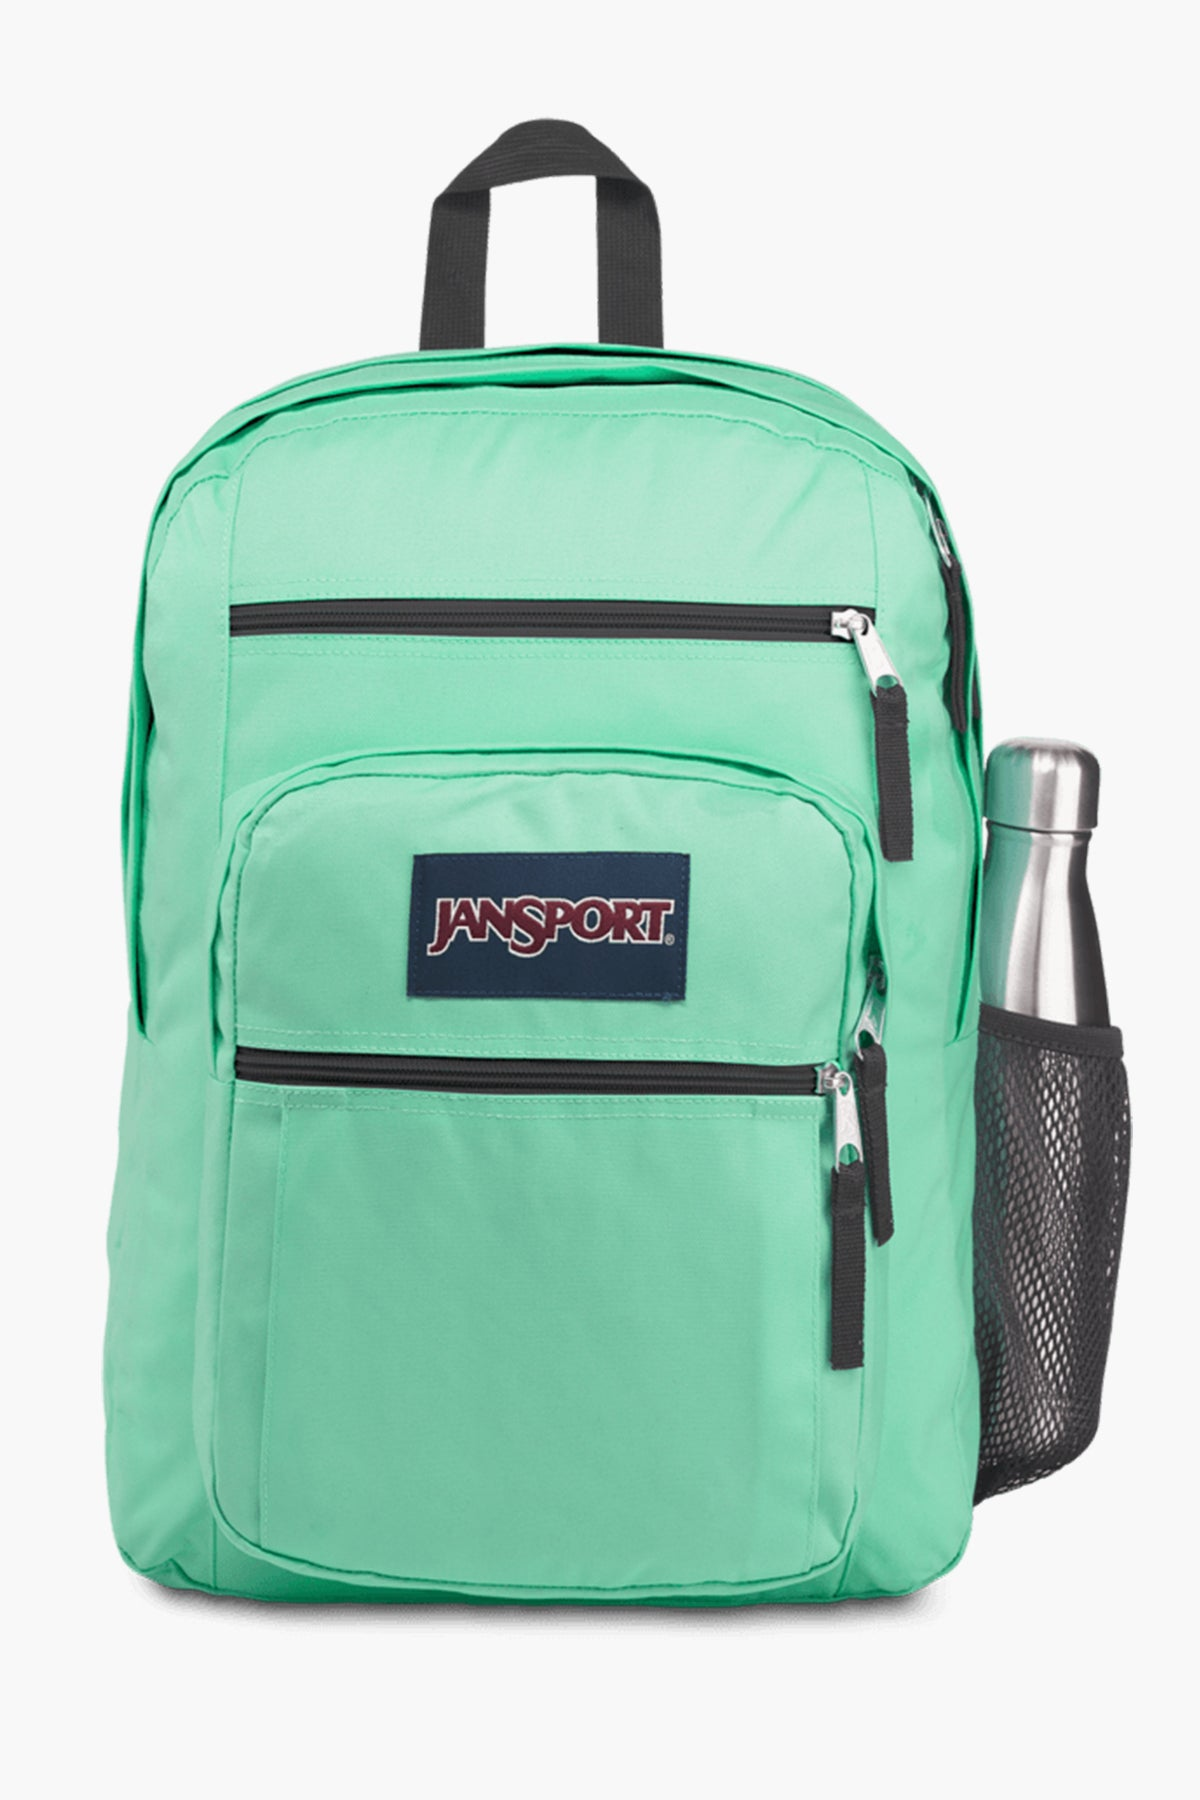 JanSport Big Student Kids Backpack - Tropical Teal